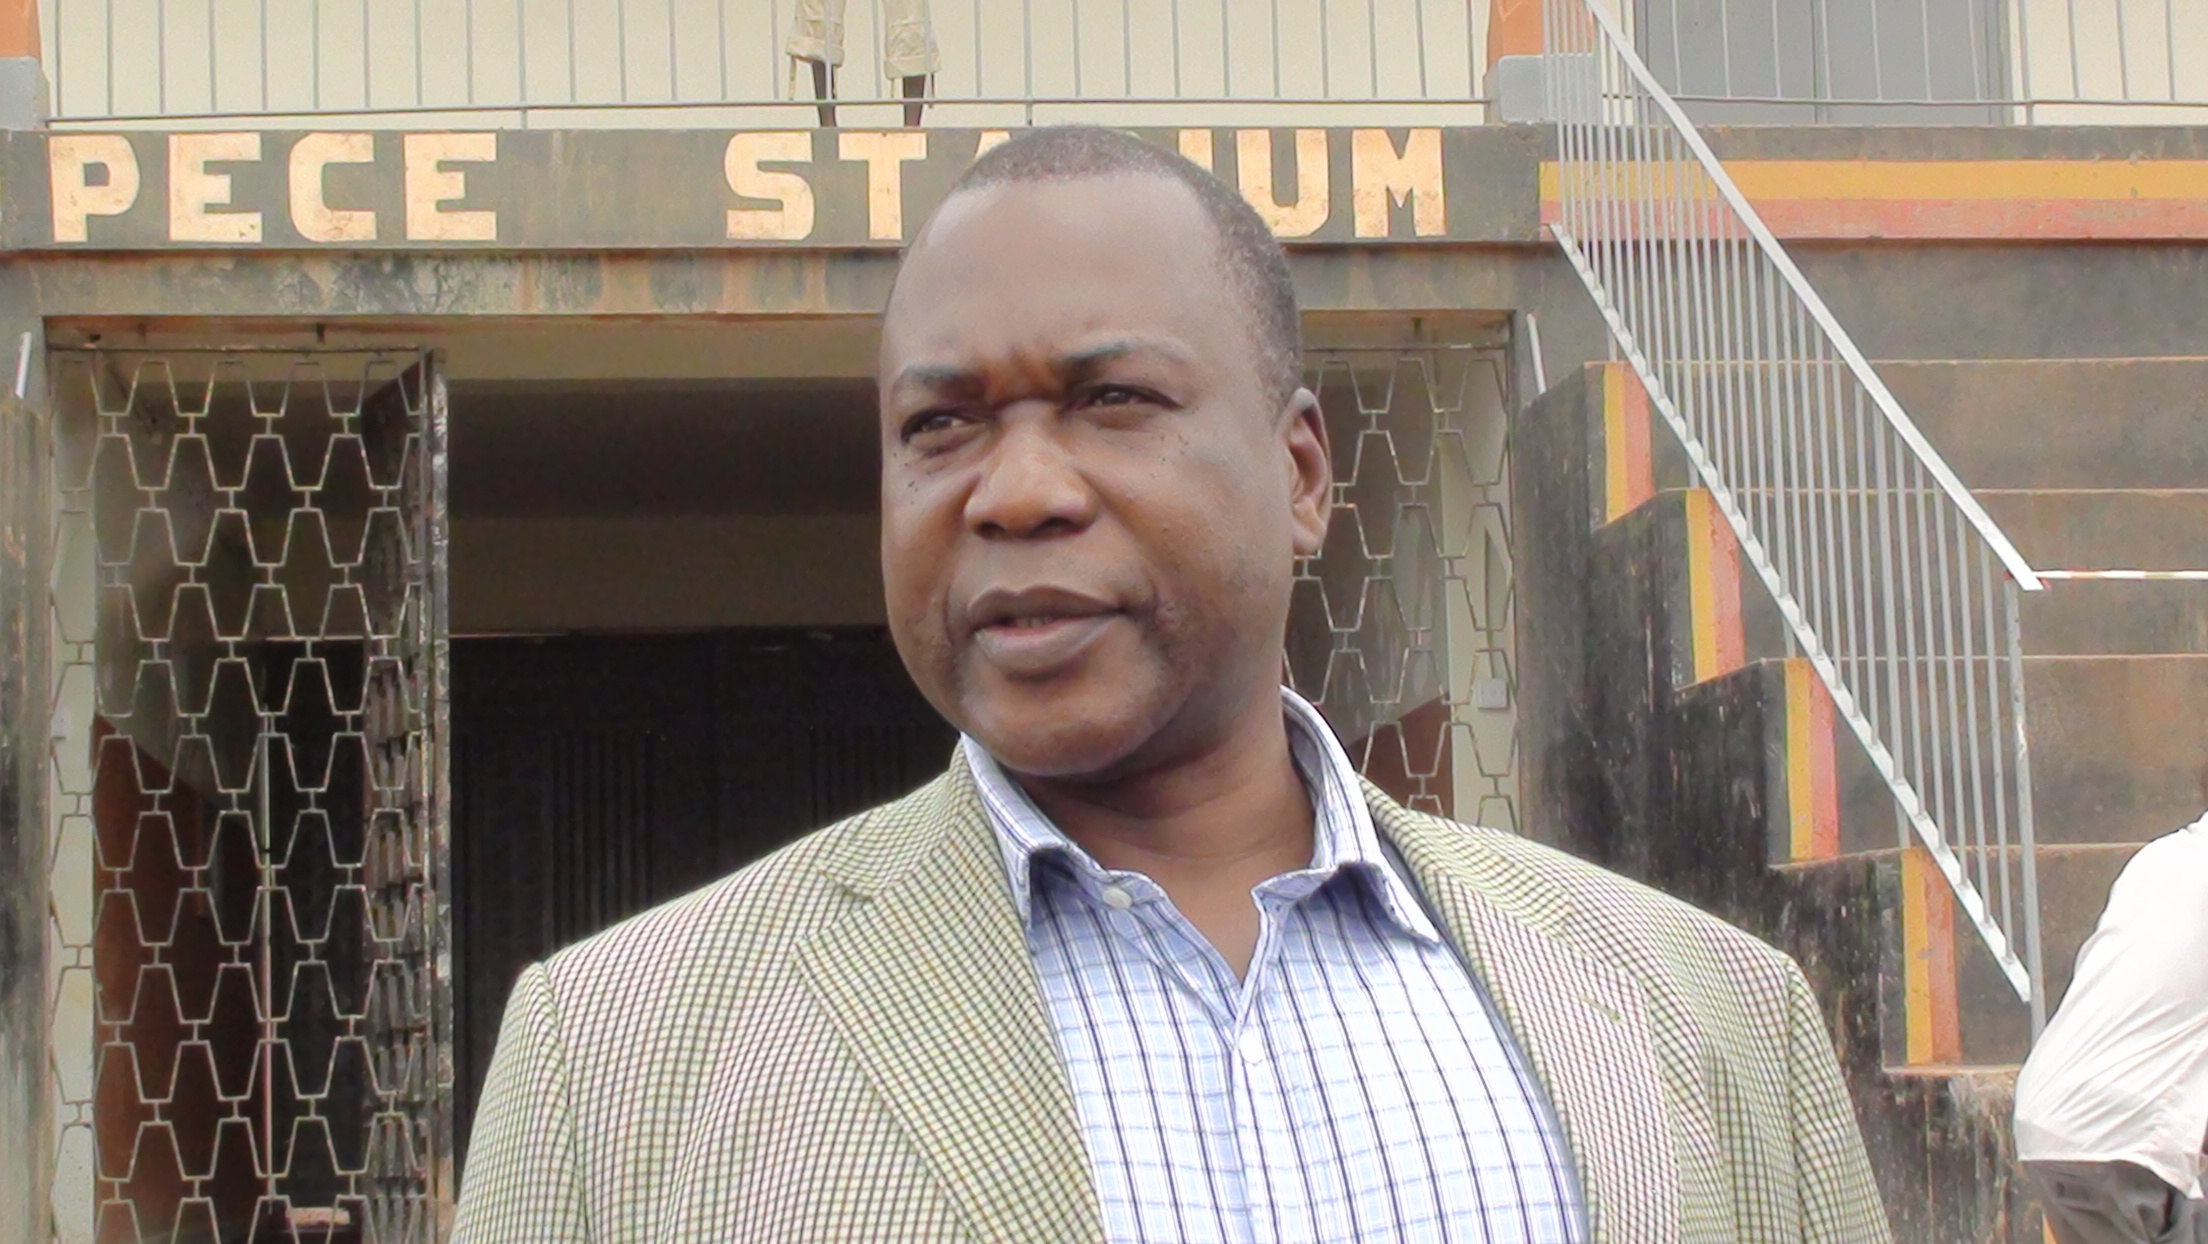 Site Project Engineer, Gideon Gumisireza says more money is still needed to pay debts and complete Pece Stadium renovation